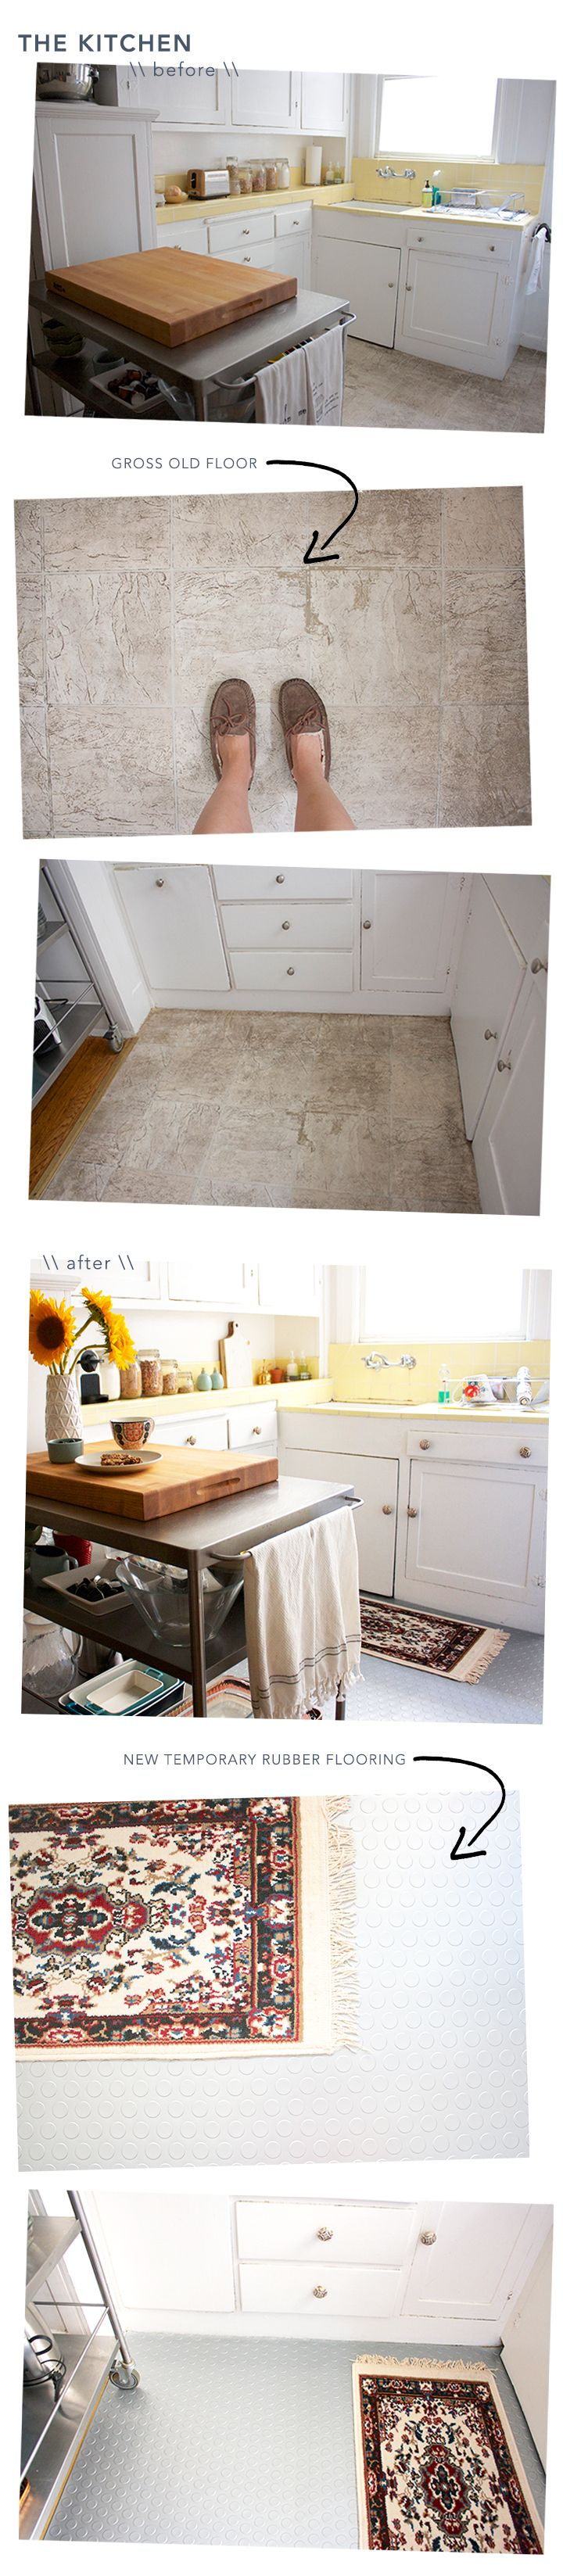 before and after temporary kitchen floor floors chic and blog